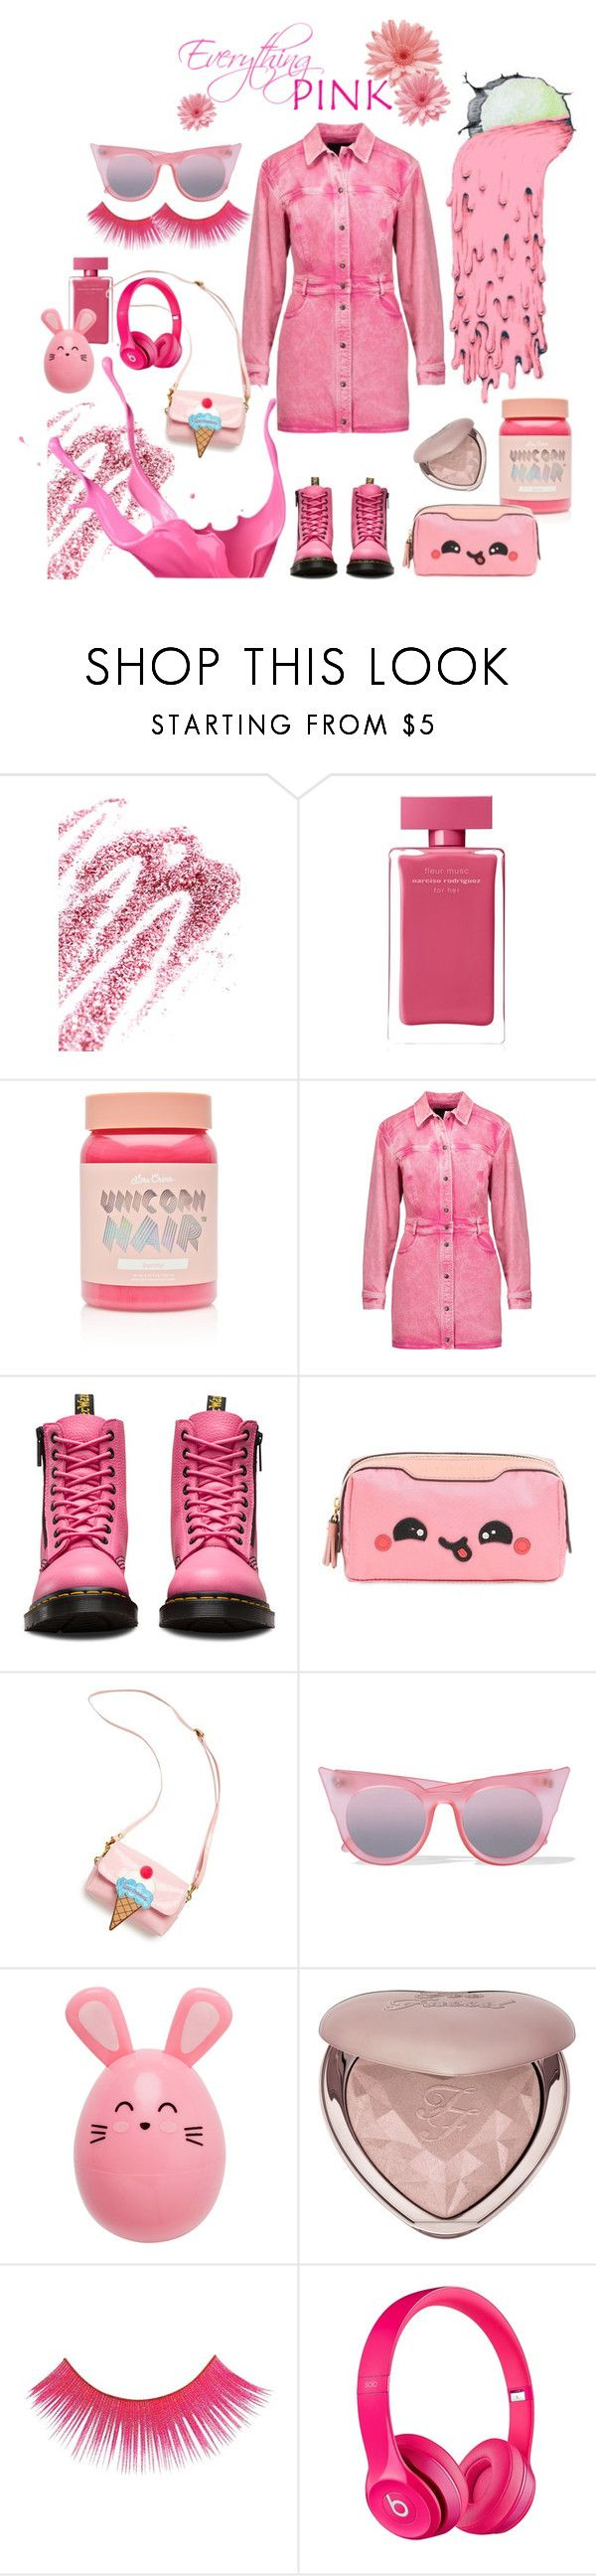 """""""Everything Pink!"""" by marilyn-montoto on Polyvore featuring Obsessive Compulsive Cosmetics, Narciso Rodriguez, Lime Crime, Roberto Cavalli, Dr. Martens, Anya Hindmarch, OOAHOOAH, Le Specs and Too Faced Cosmetics"""